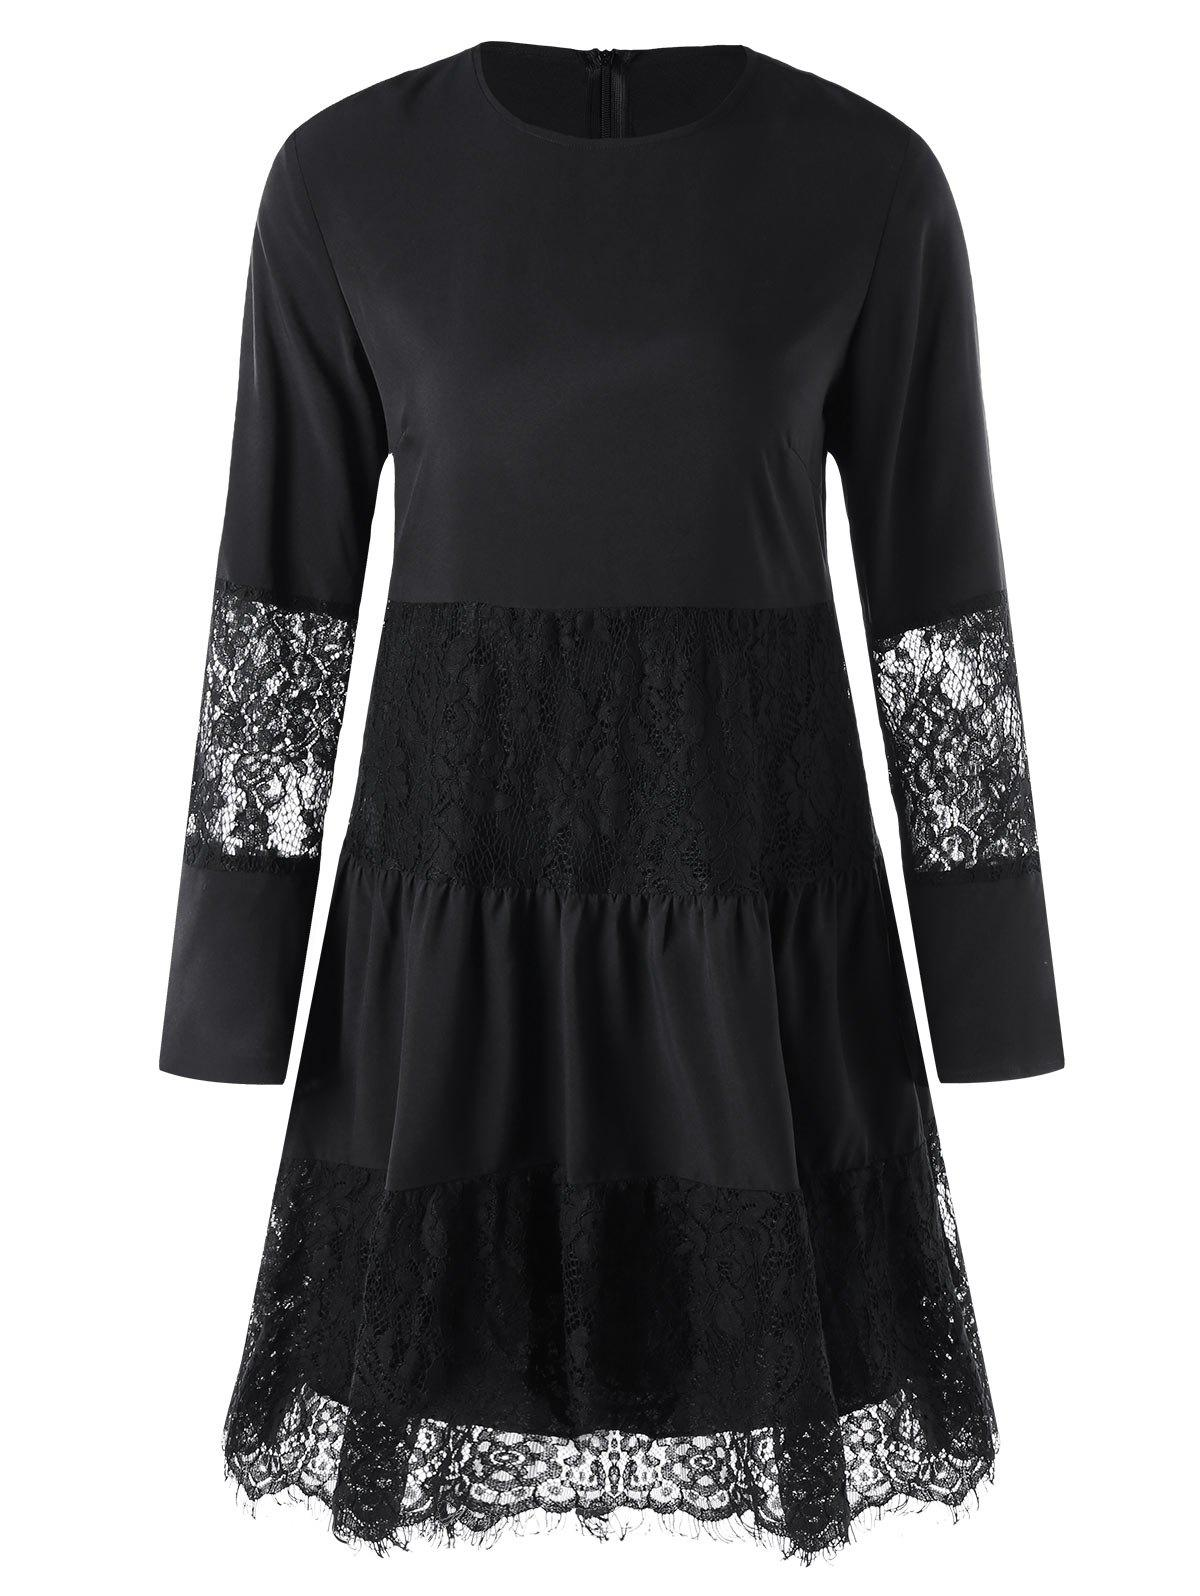 Lace Insert Dress with Slip Dress - BLACK M